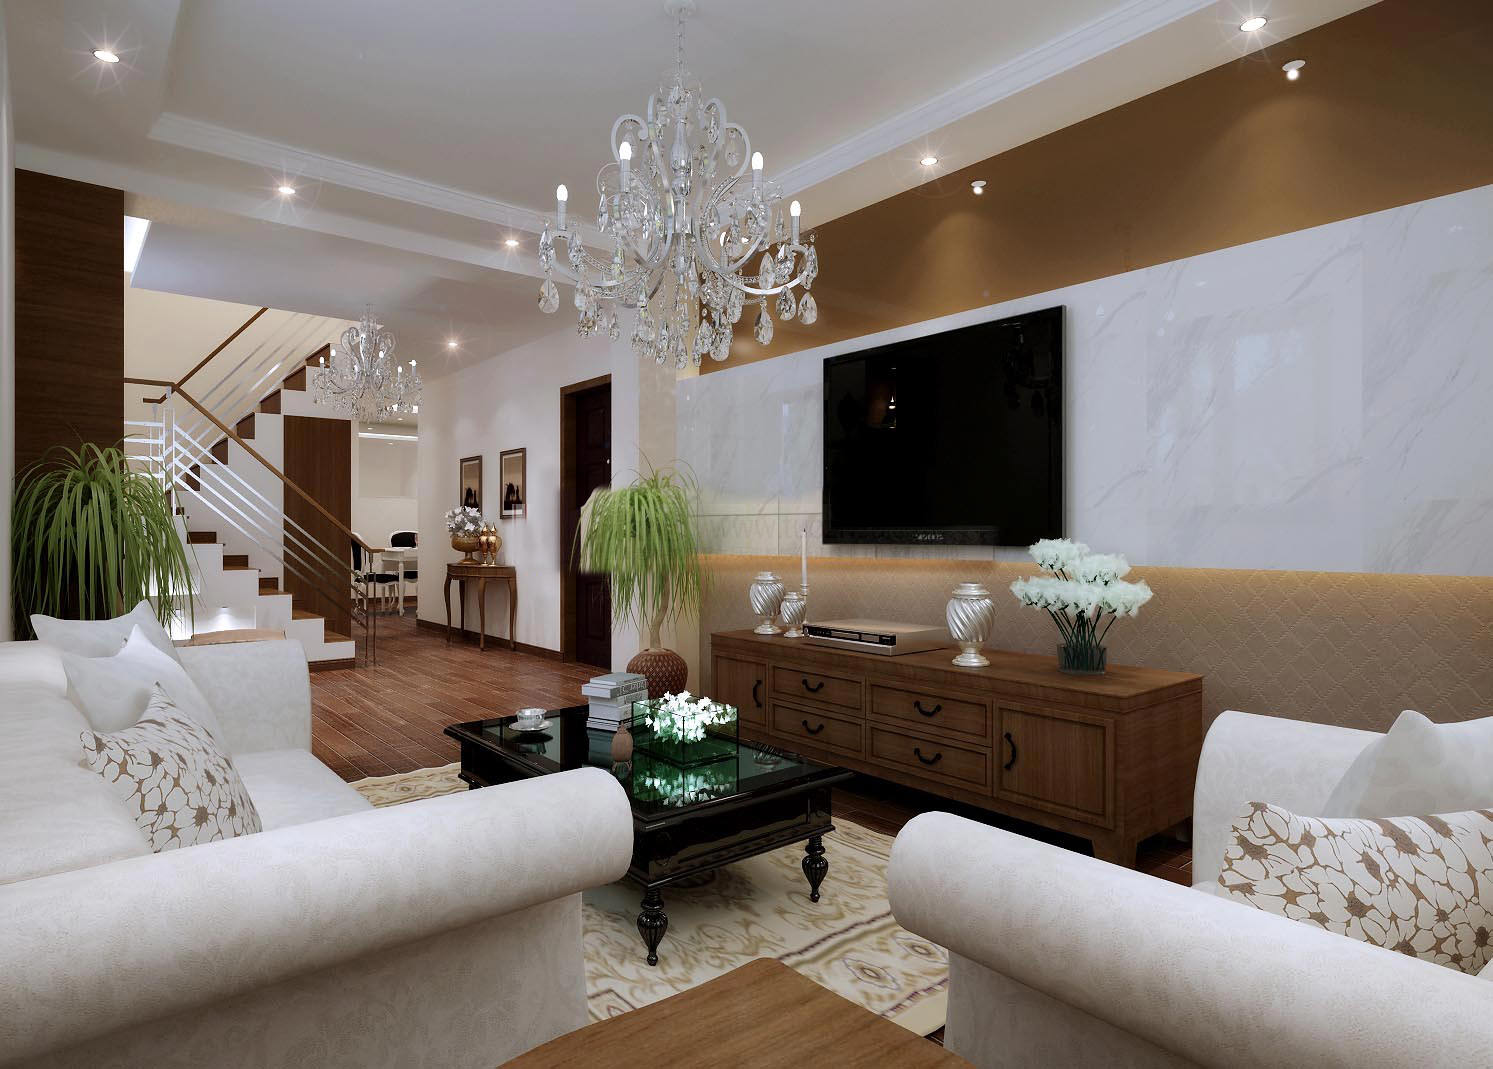 Classy living hall interior with chandelier 3d model max Model home family room pictures